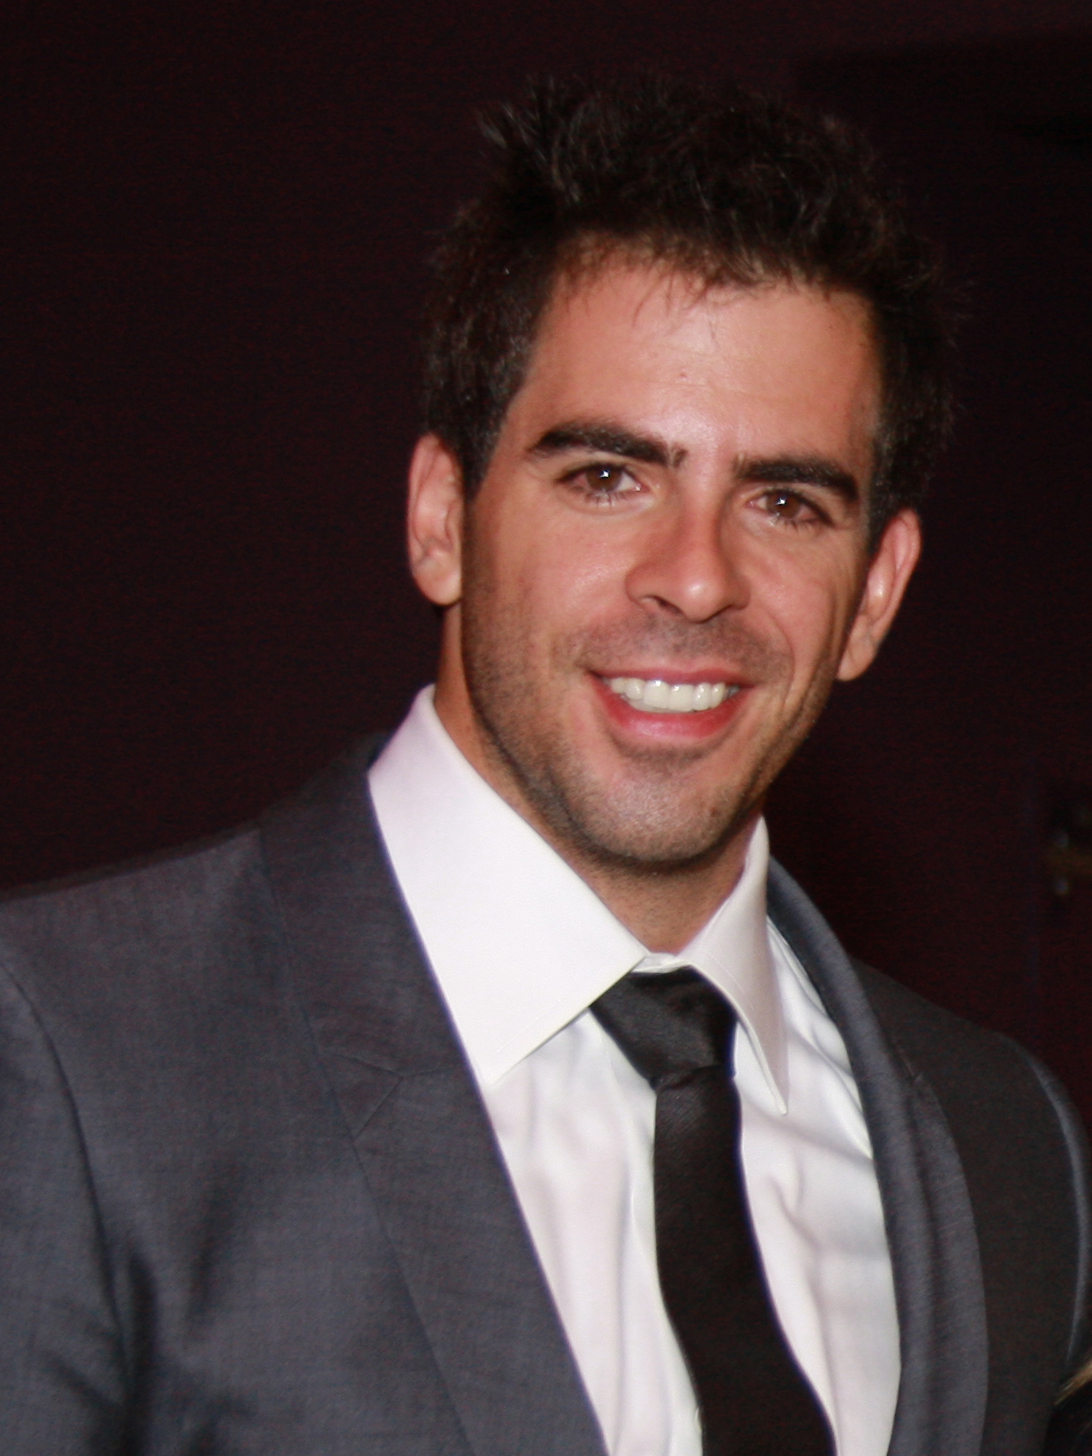 The 46-year old son of father Dr. Sheldon Roth and mother Cora Roth Eli Roth in 2018 photo. Eli Roth earned a  million dollar salary - leaving the net worth at 19 million in 2018